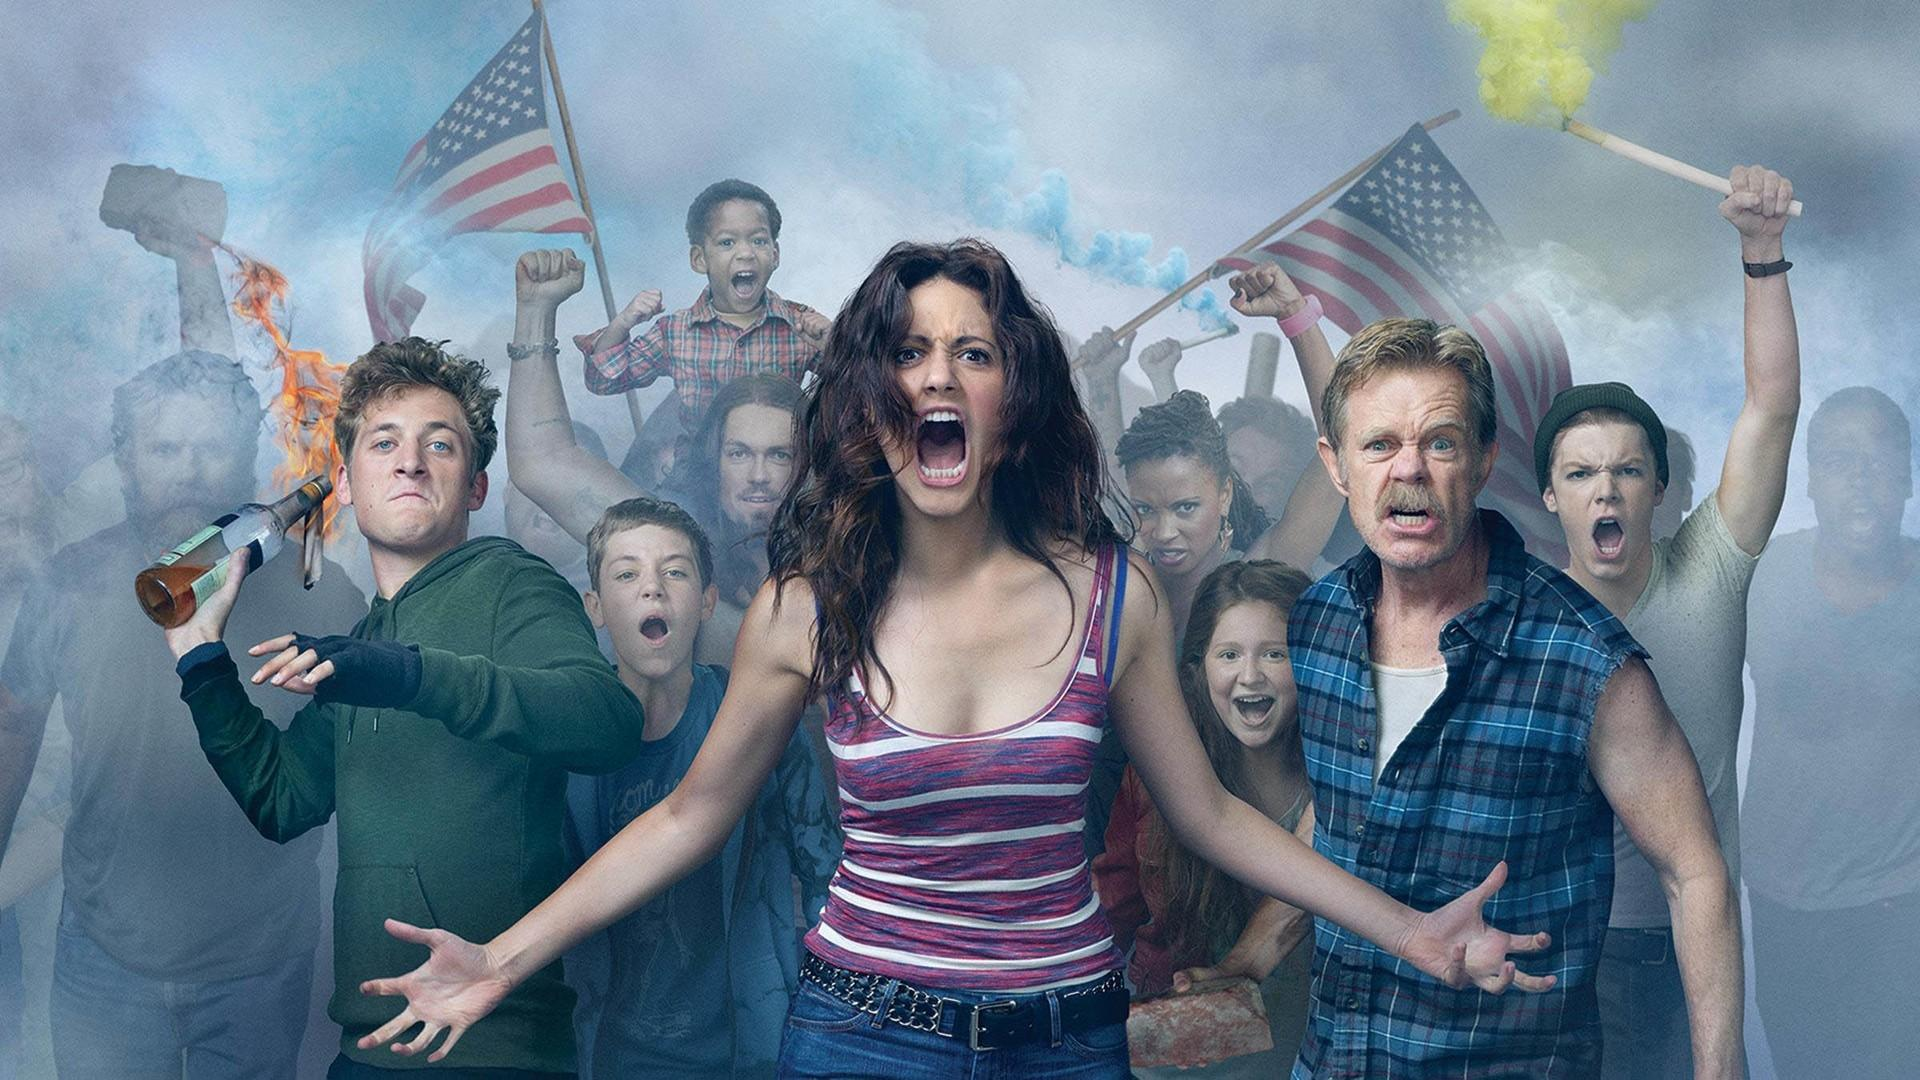 Shameless (US) wallpapers HD quality